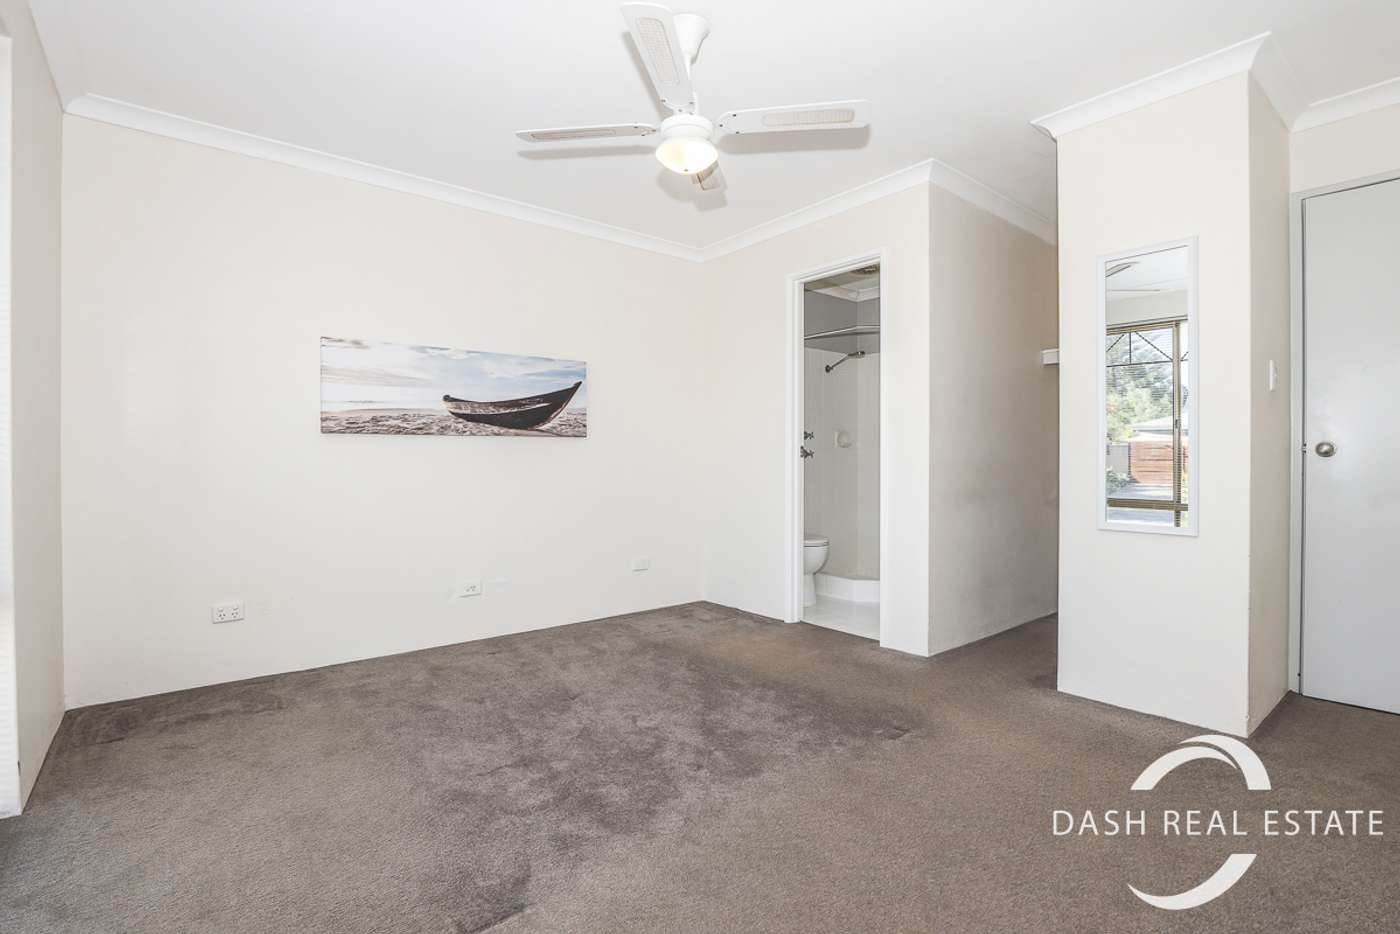 Sixth view of Homely house listing, 1 Burra Court, Clarkson WA 6030